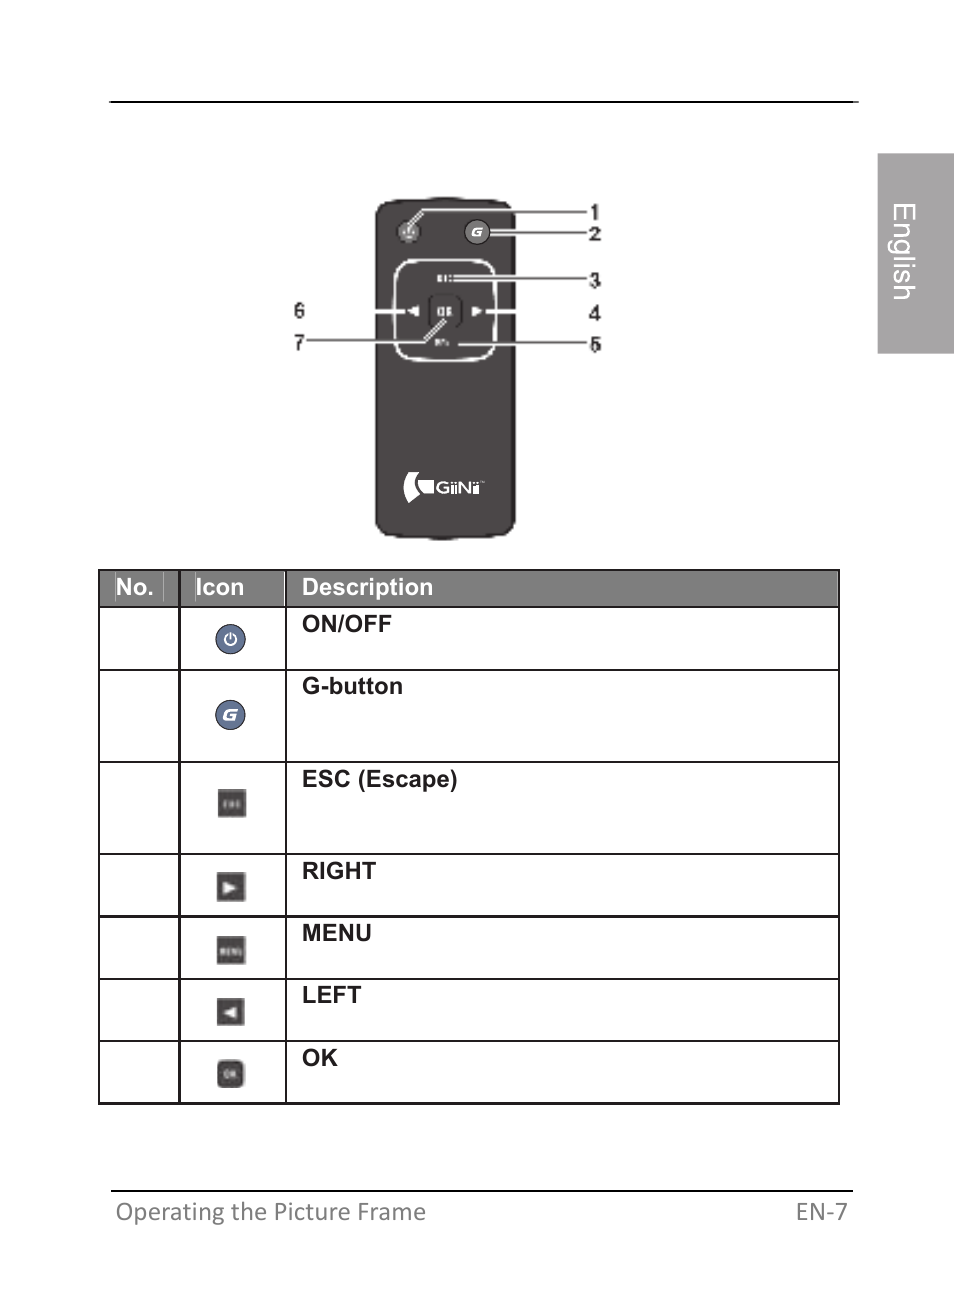 Operating the picture frame en‐7 | GiiNii GH-701P User Manual | Page ...